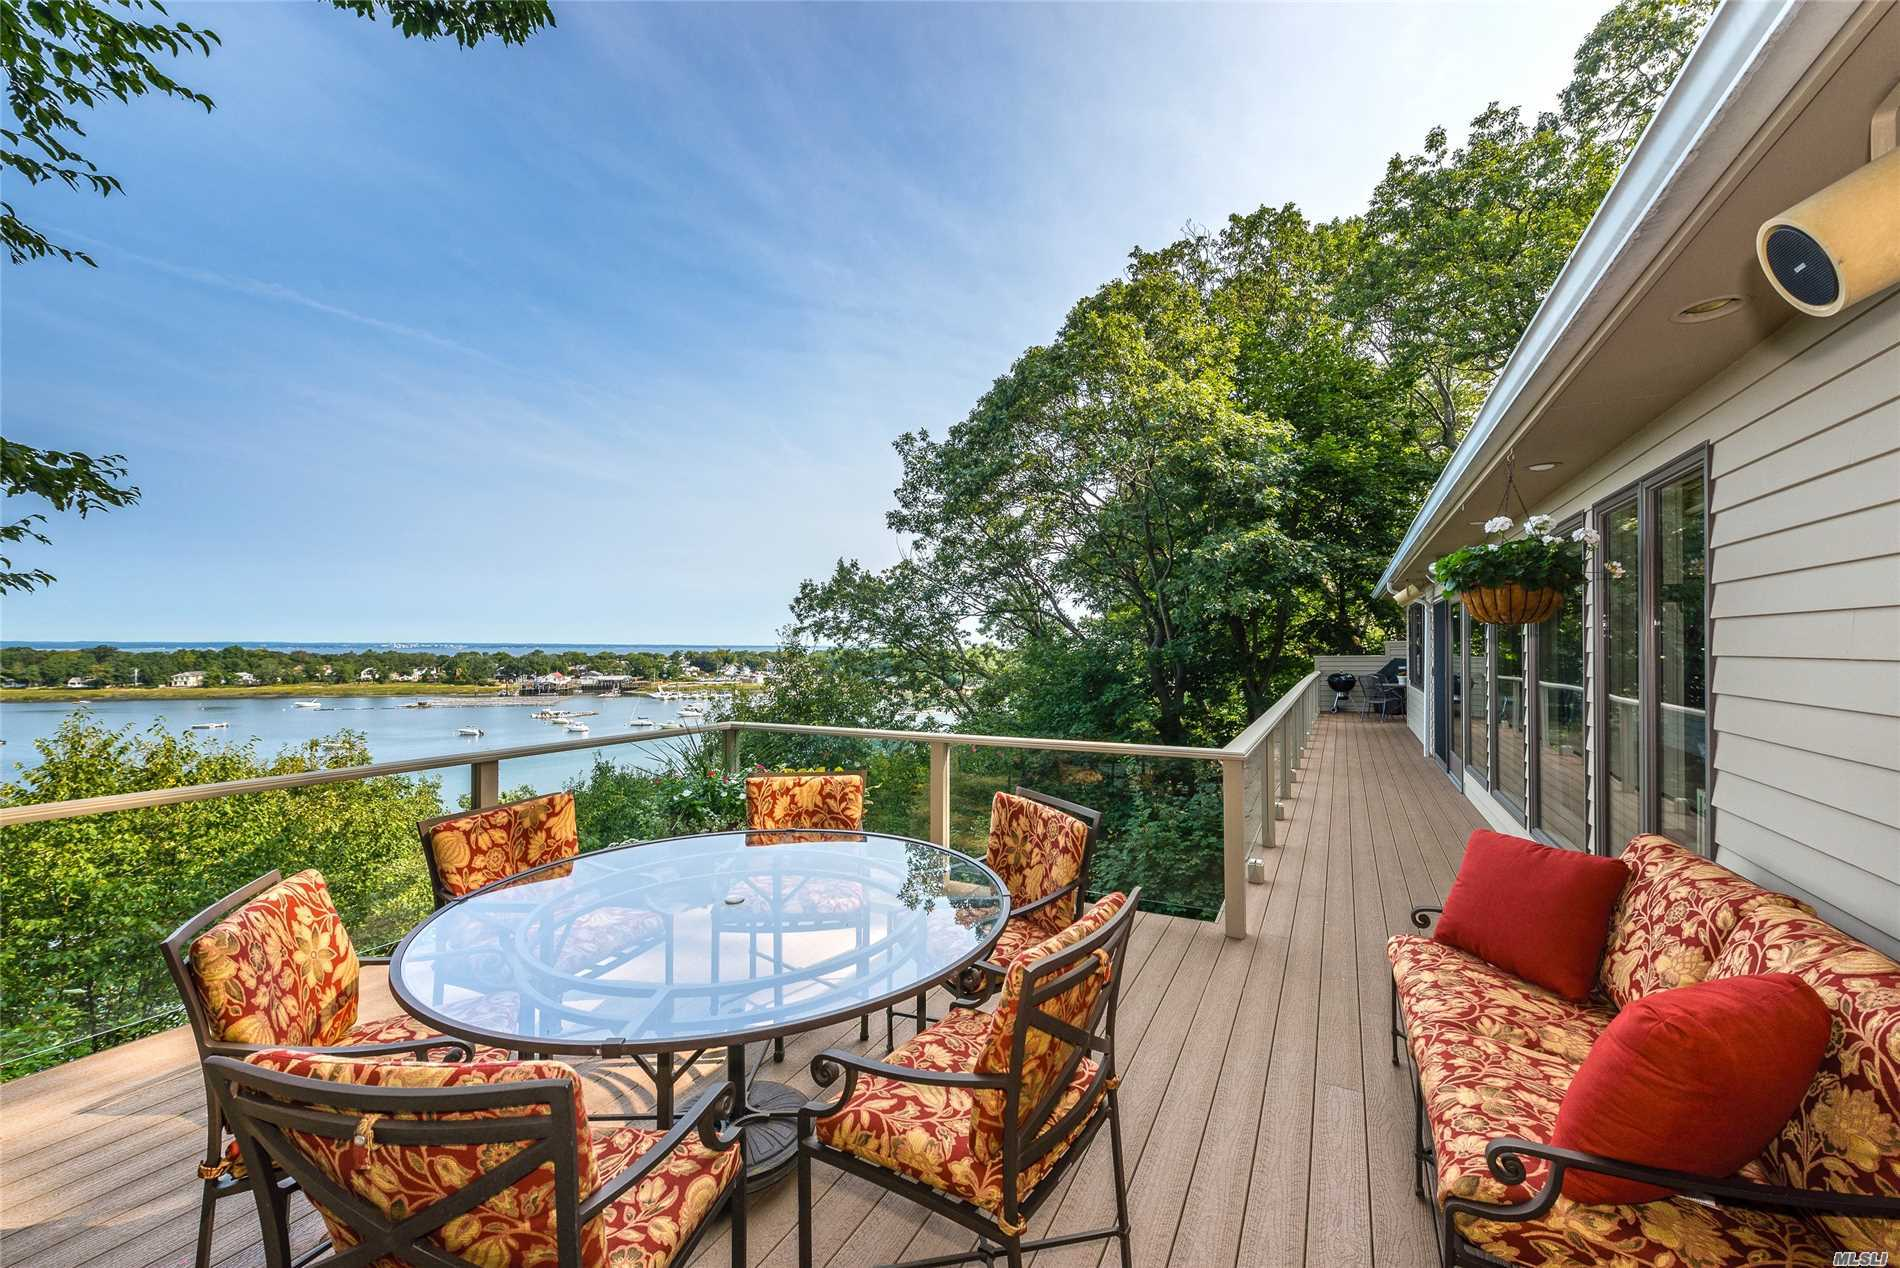 Hamptons Alternative! Enjoy Spectacular Water Views Of Mill Neck Creek, LI Sound And Connecticut Beyond In This 4-Bedroom, 2.5-Bath Hillside Retreat. This Meticulously Maintained Home Is Located In Mill Neck Estates, A Private Community Offering Private Beach Access & Mooring Rights. Perfect As A Summer Getaway, Weekender Or Year-Round Residence.